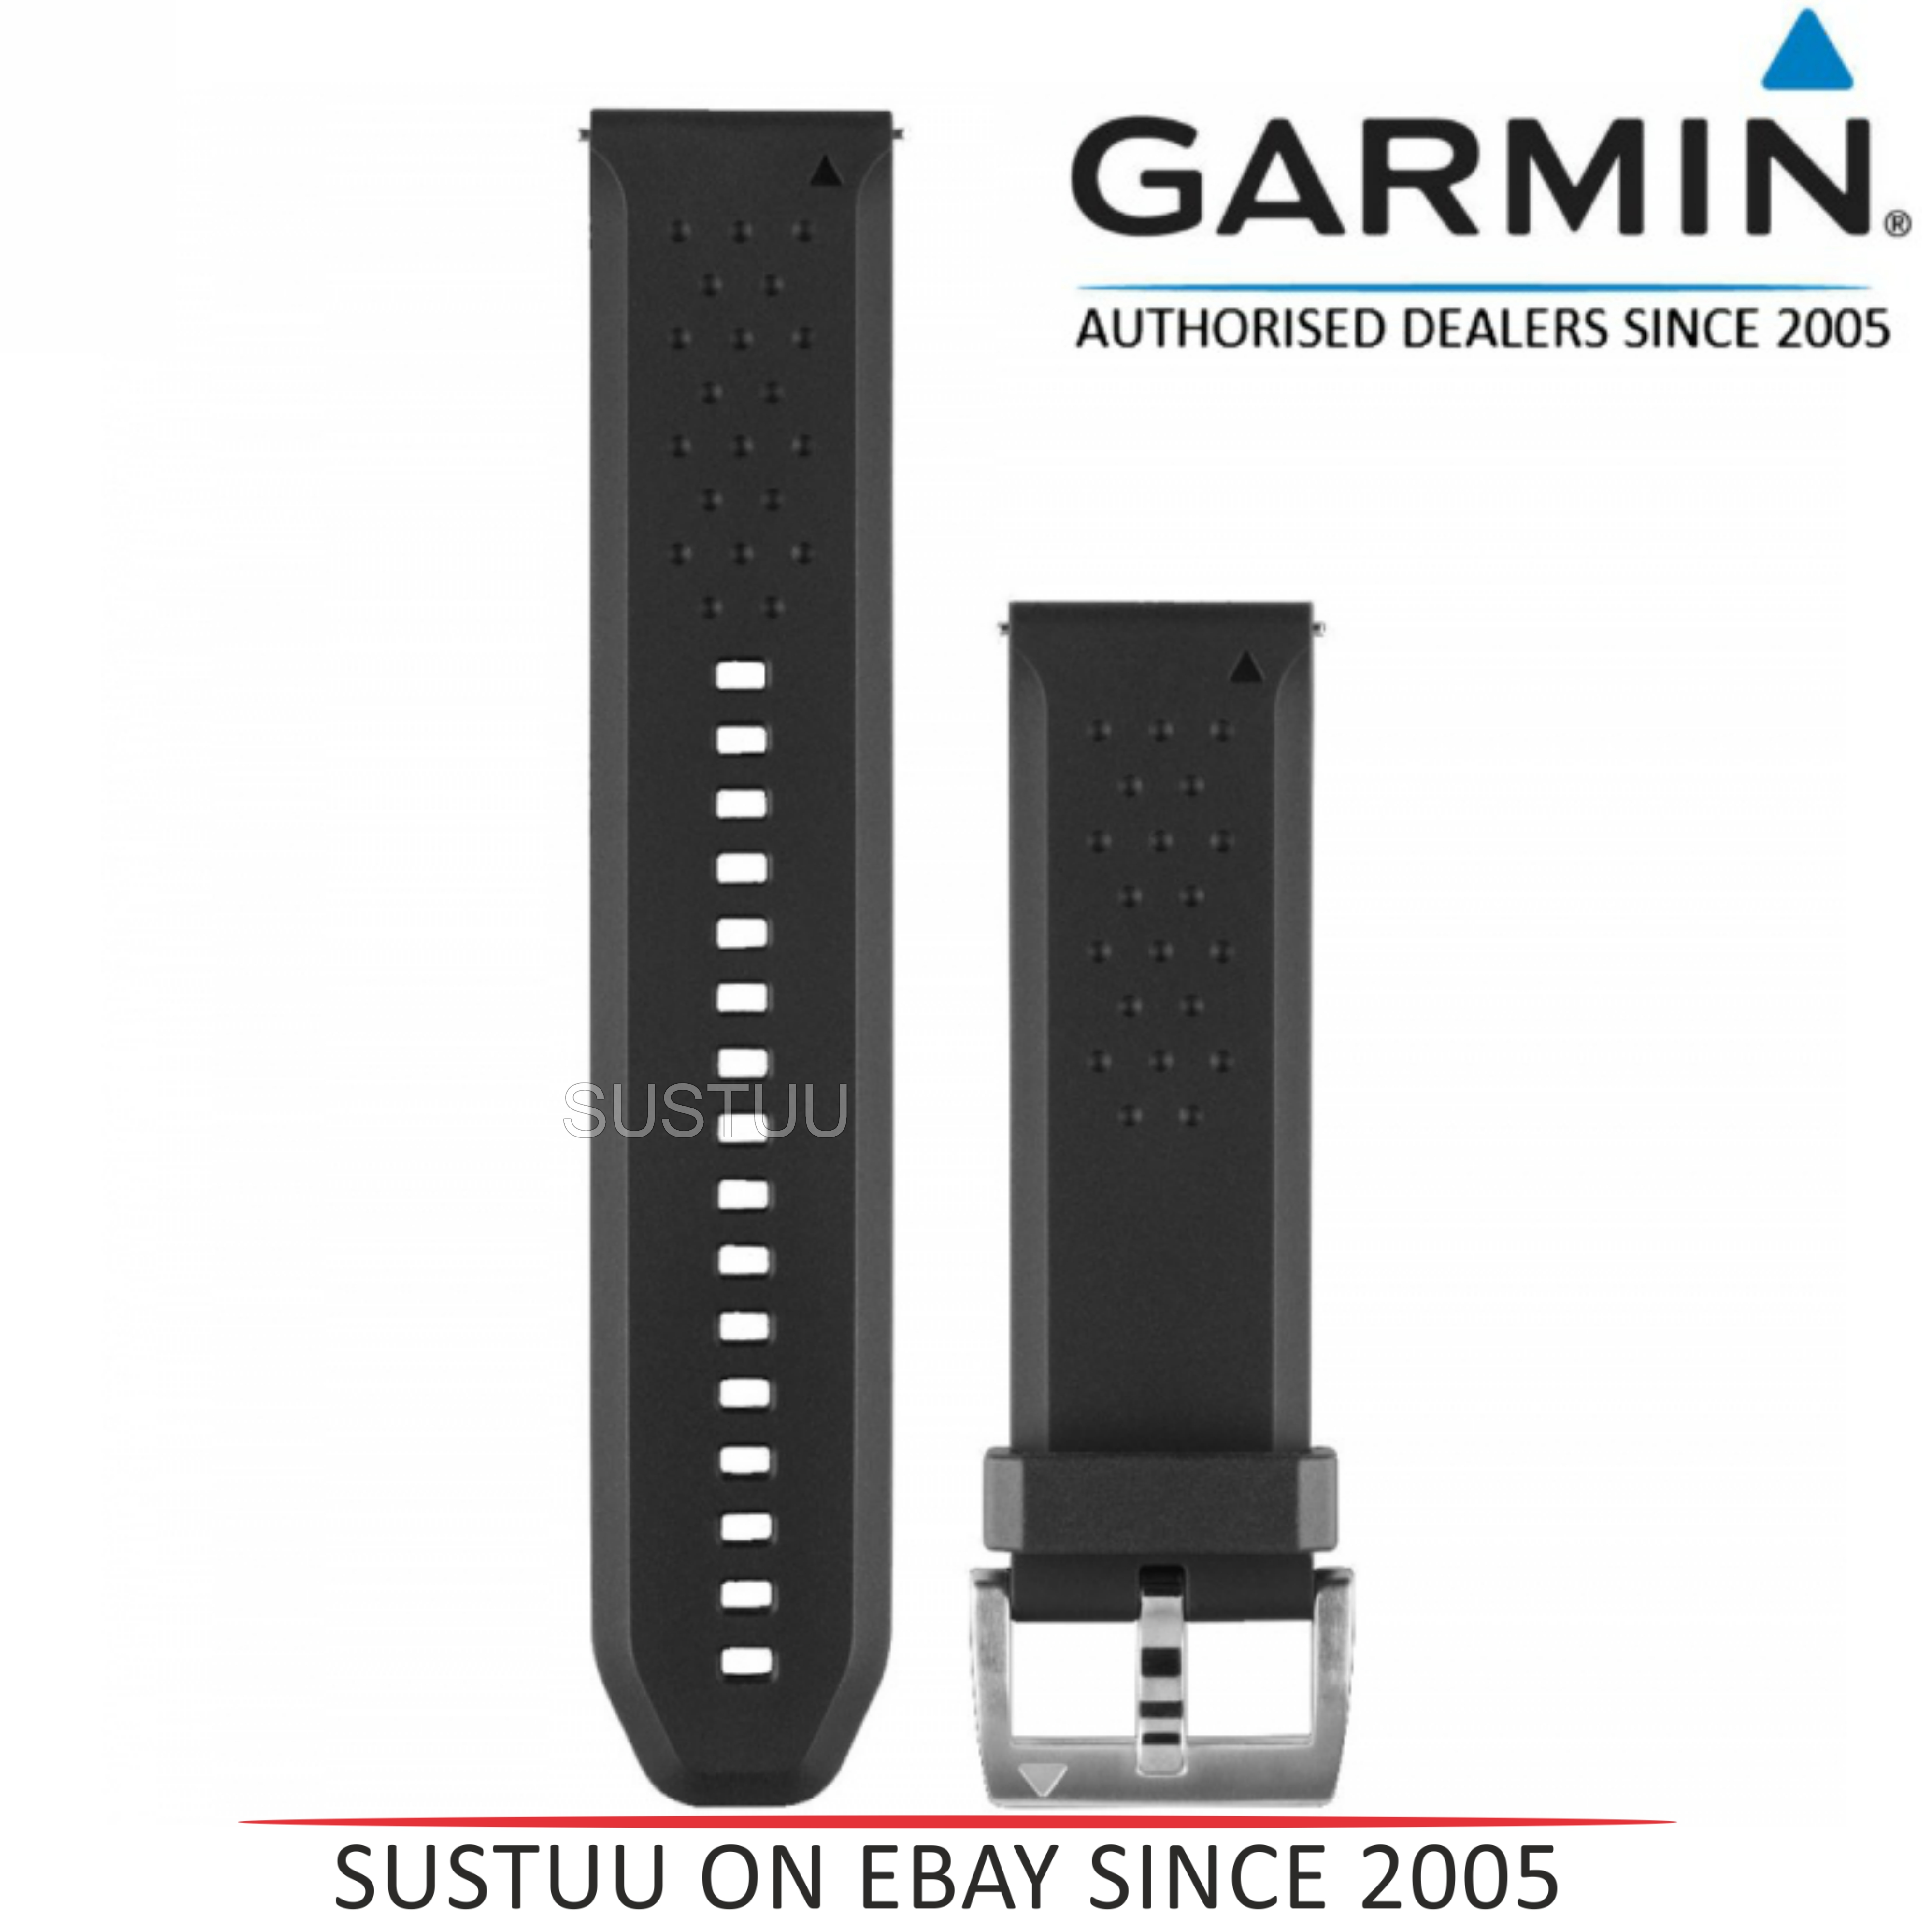 Garmin 010-12419-04?Replacement Smart Watch Strap Band?Fenix Chronos?Silicone-B